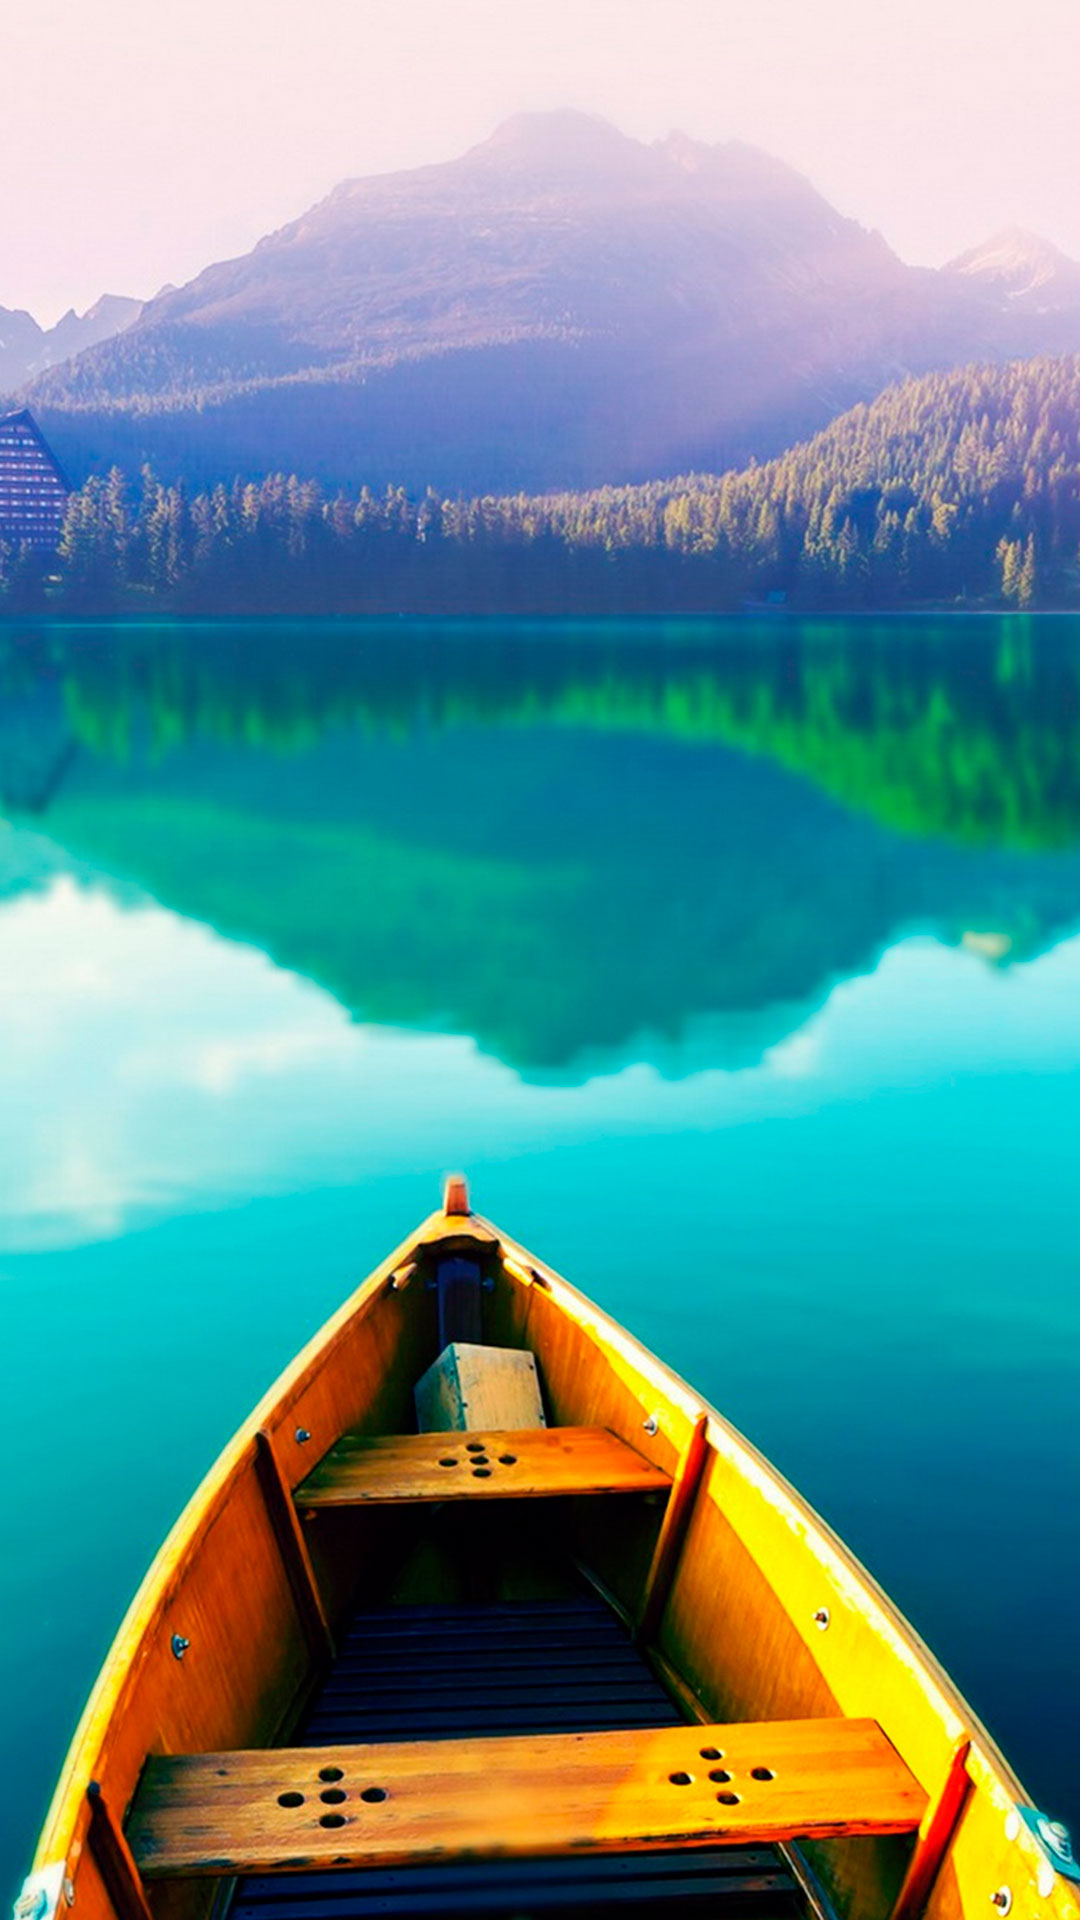 iPhone wallpaper lake mountains Lake